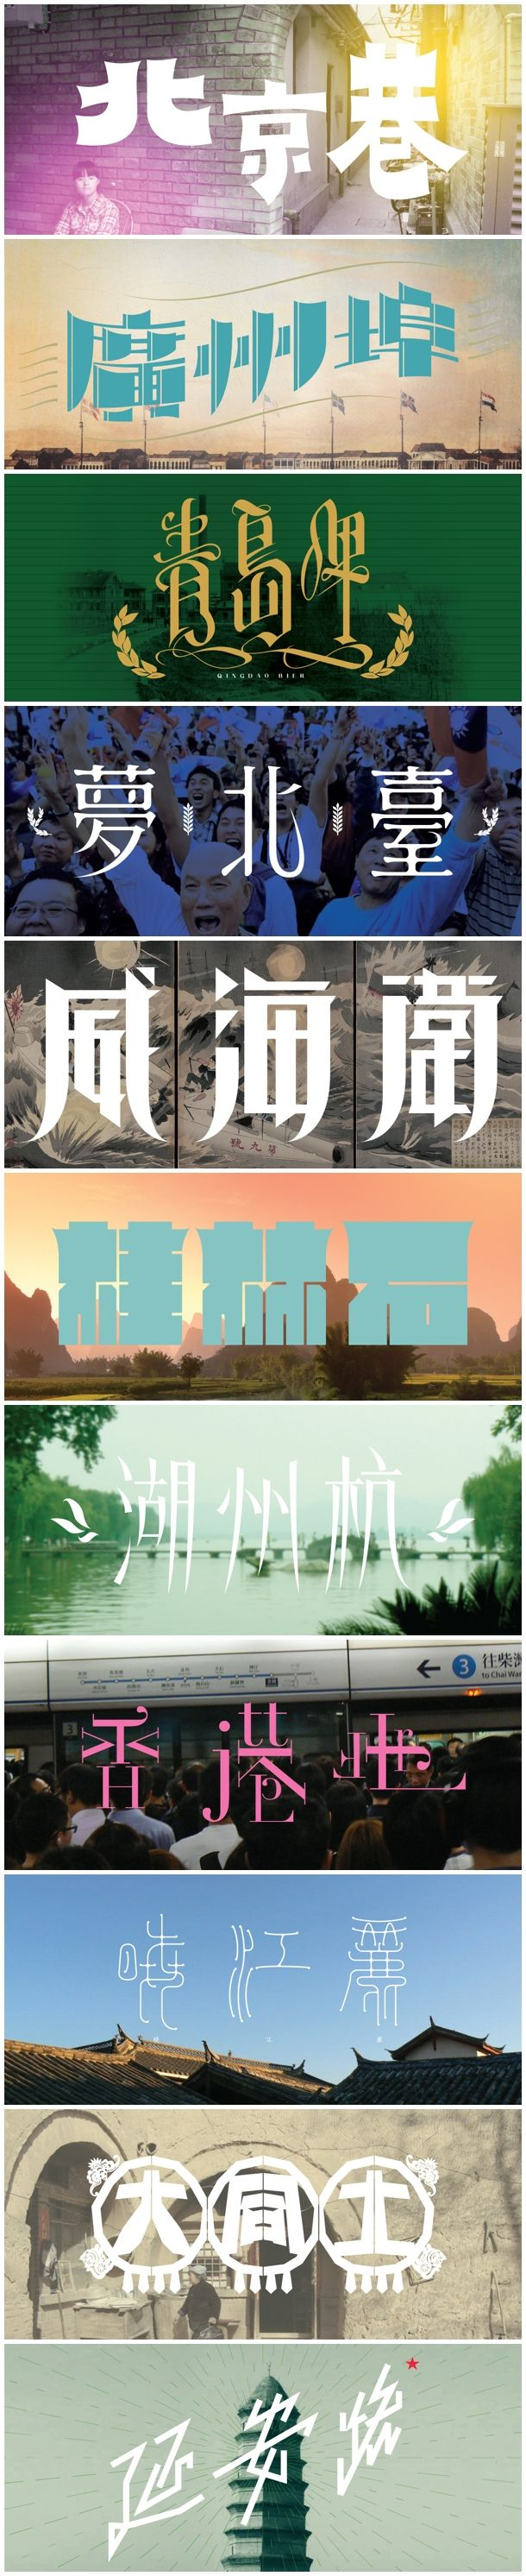 Chinese Typography.